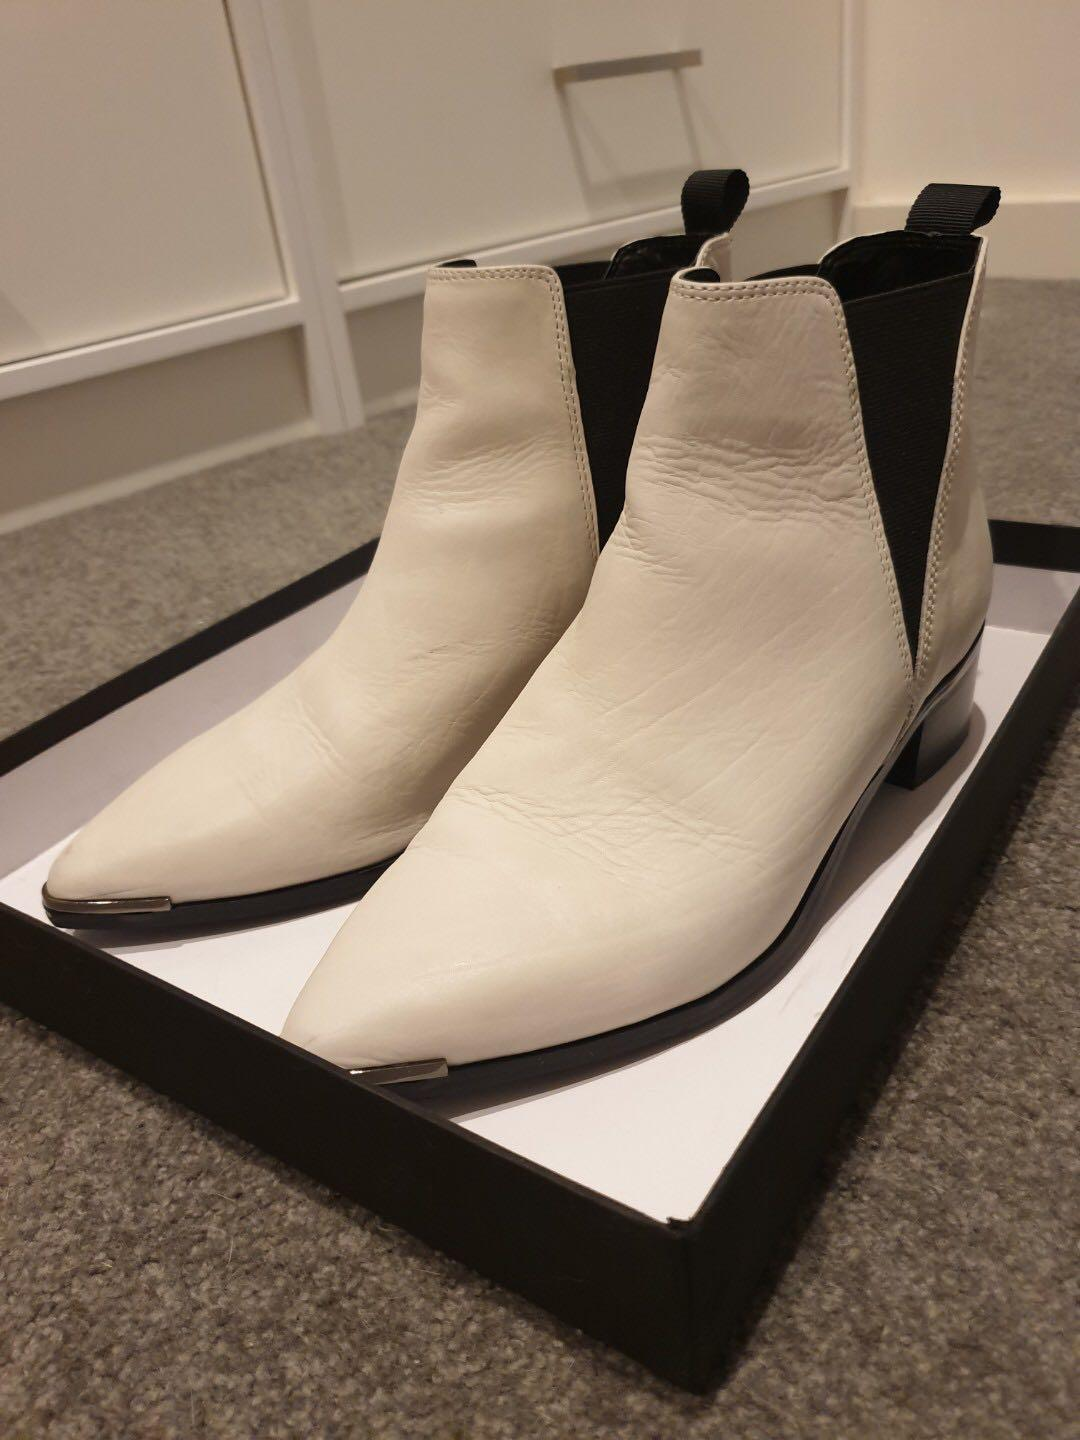 New Tony Bianco real leather boots